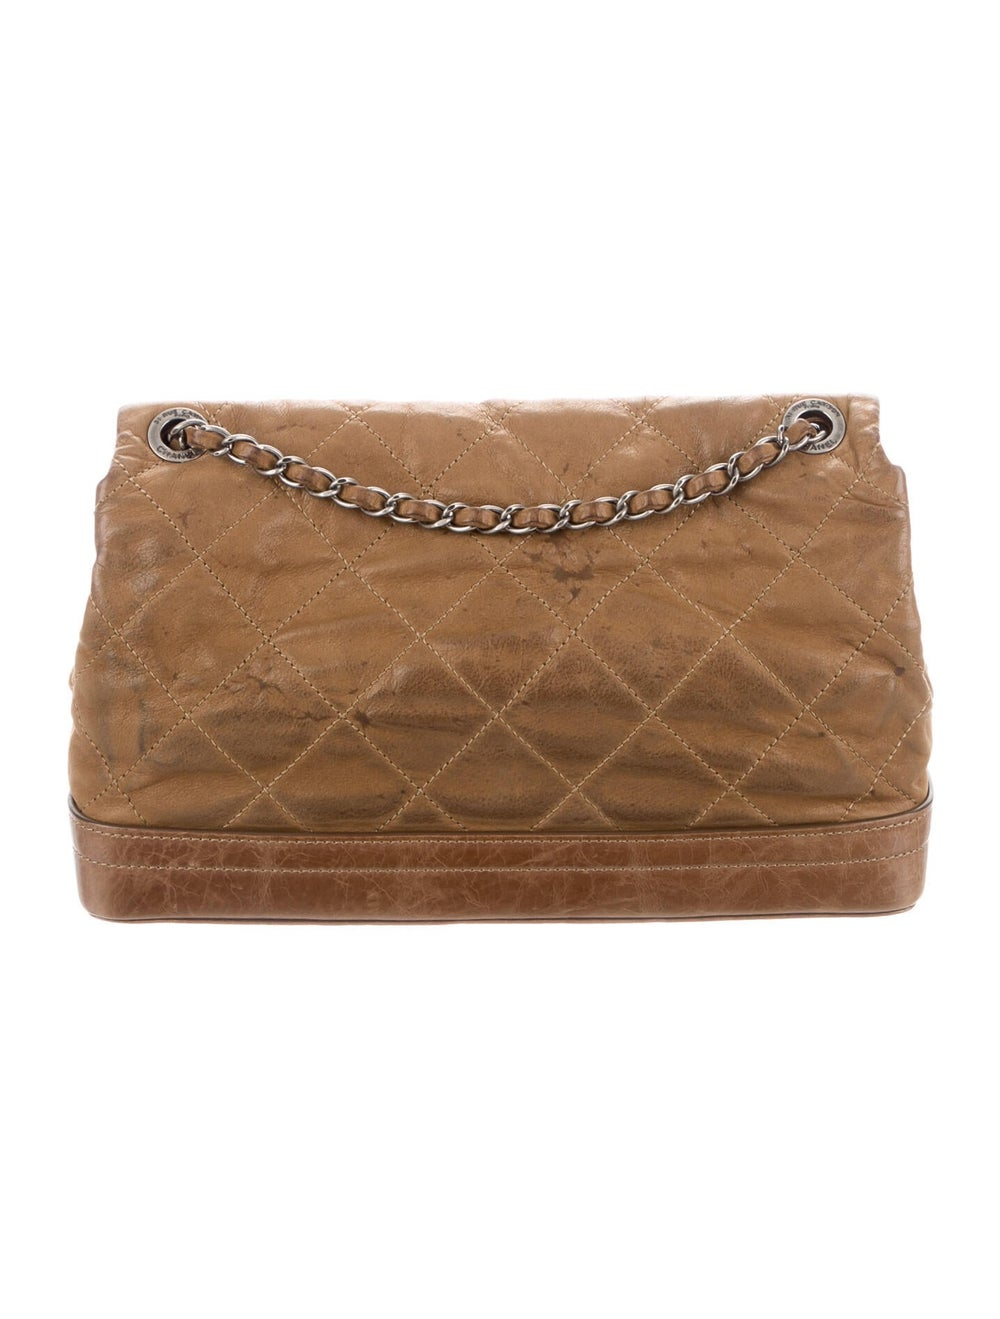 Chanel VIP Flap Bag Brown - image 4